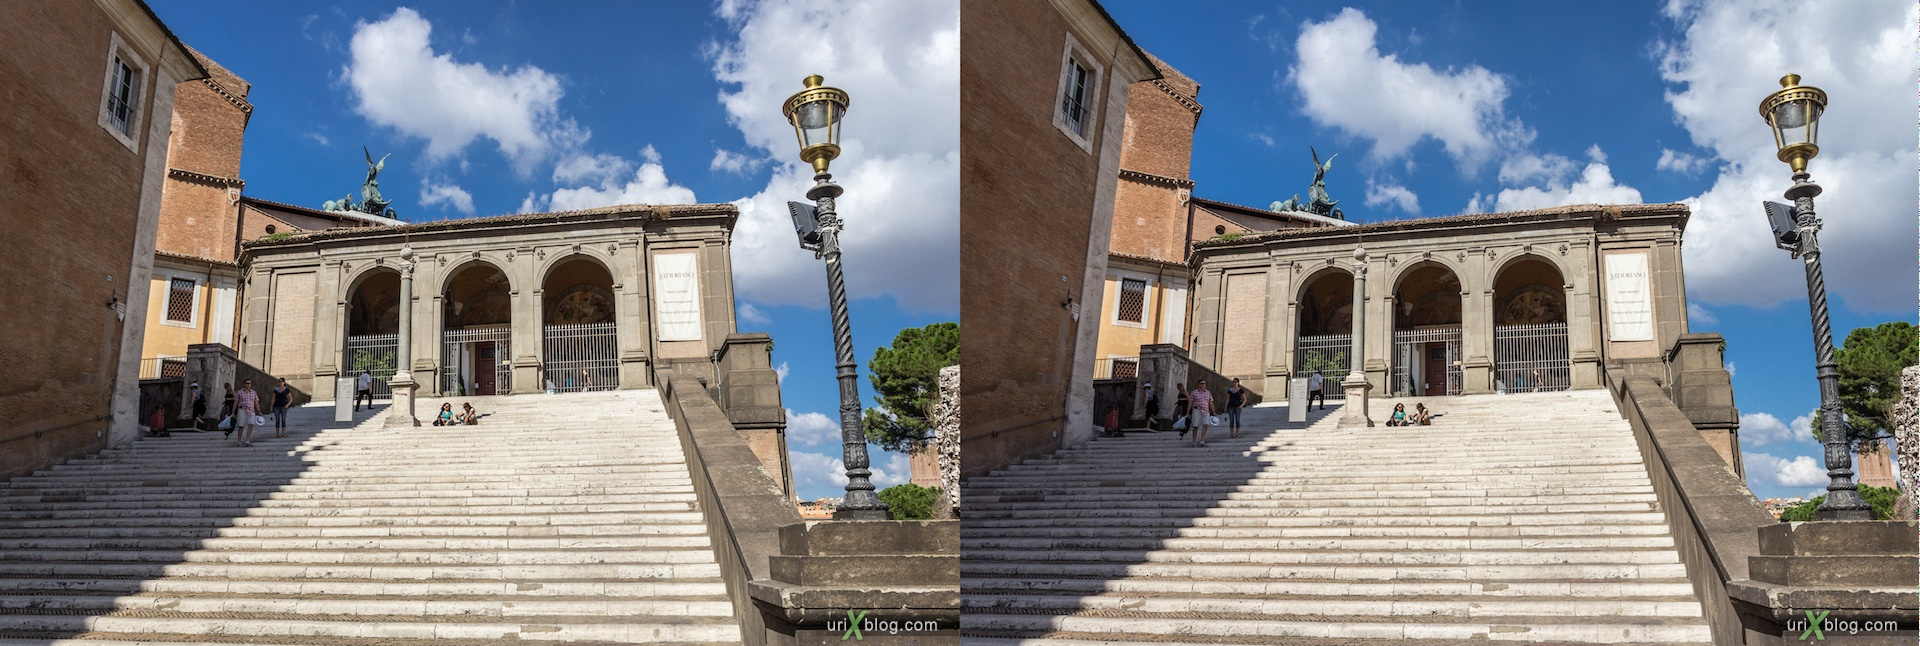 2012, church of Santa Maria in Aracoeli, Rome, Italy, cathedral, monastery, Christianity, Catholicism, 3D, stereo pair, cross-eyed, crossview, cross view stereo pair